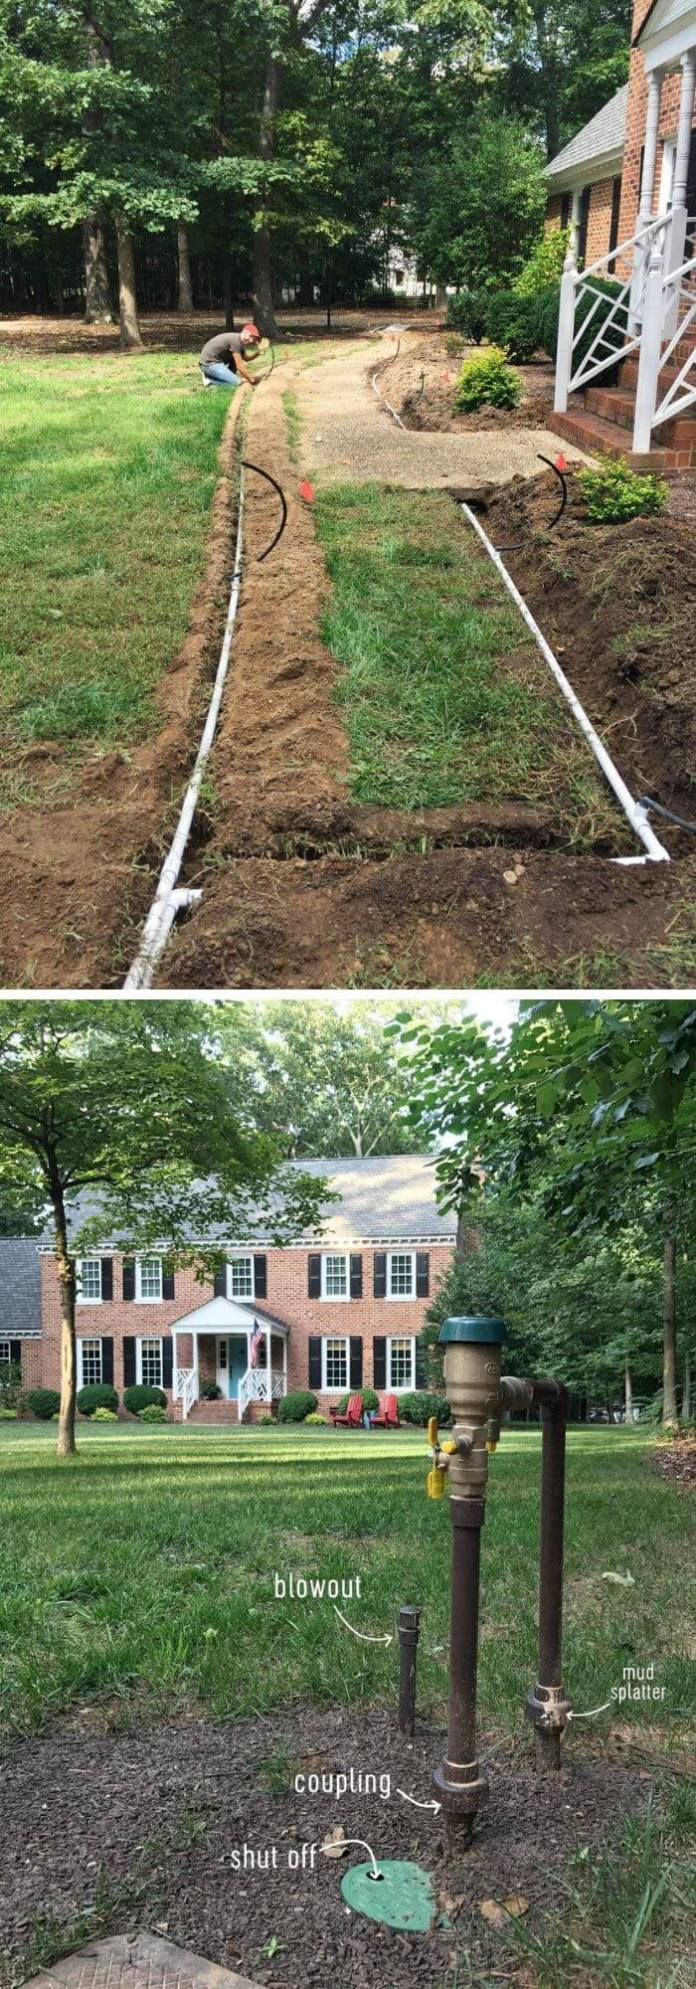 Install an irrigation system